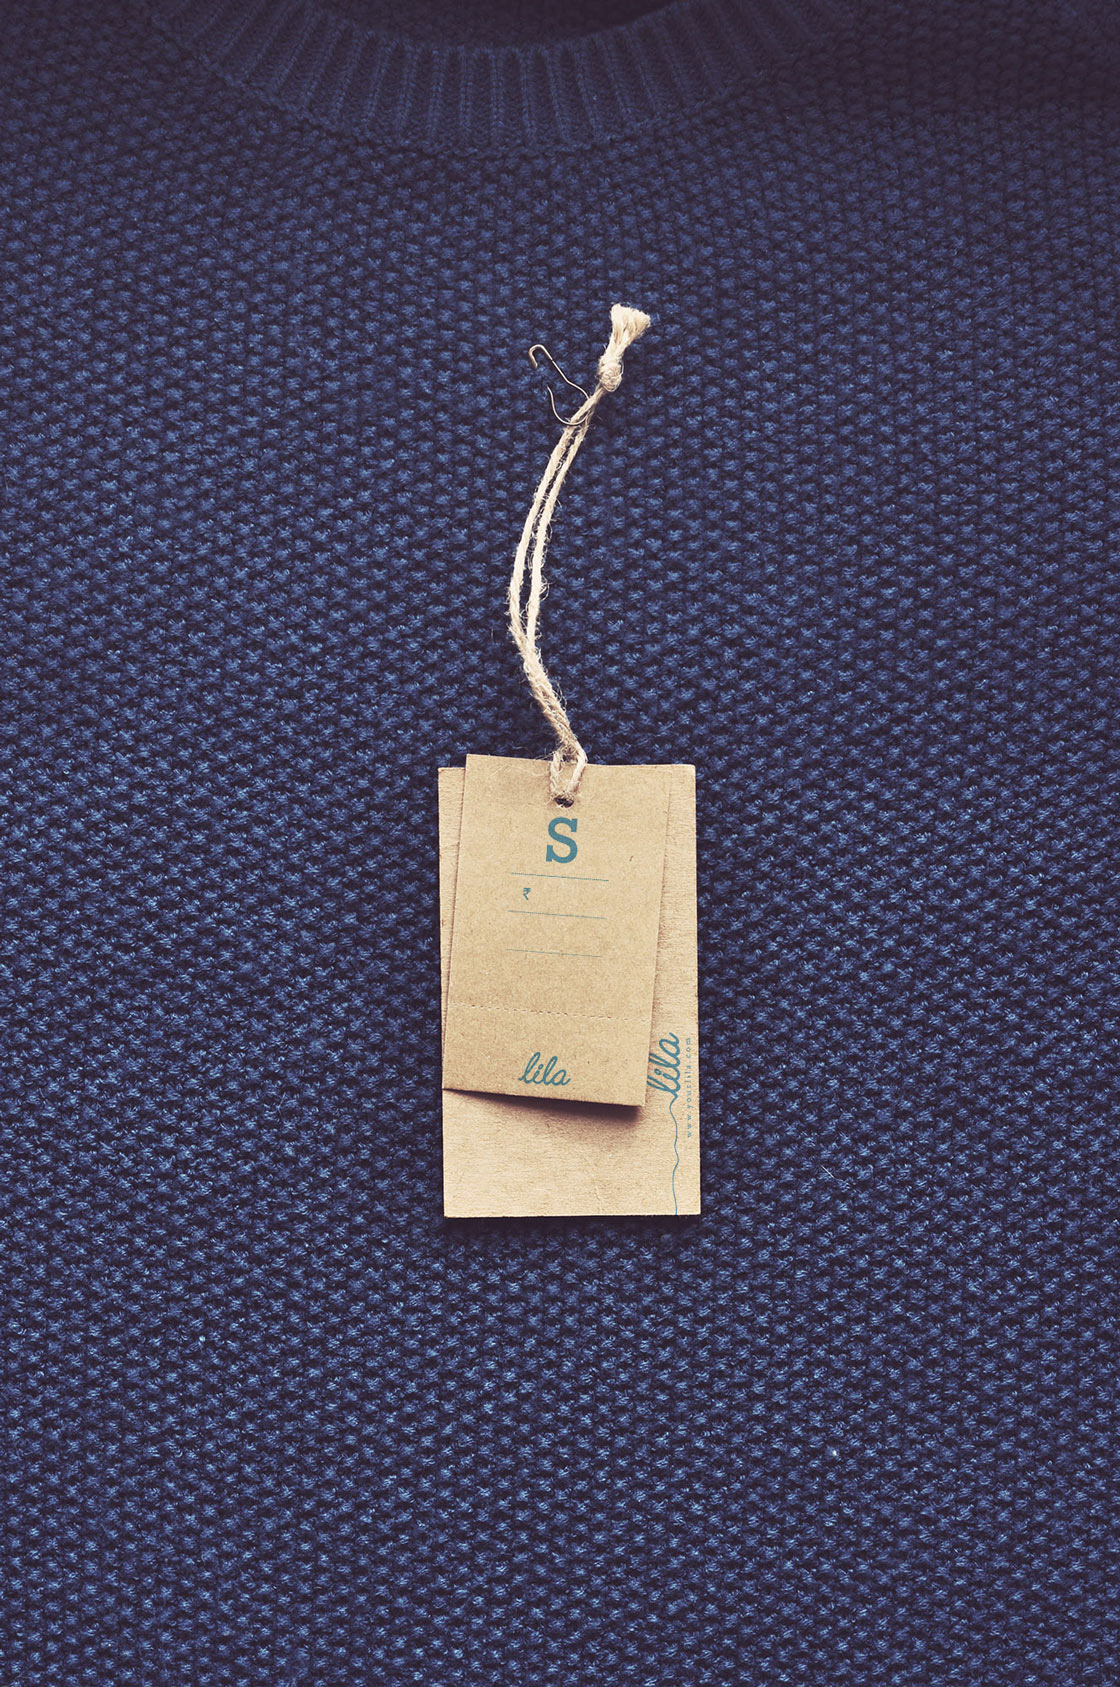 cloth-tags